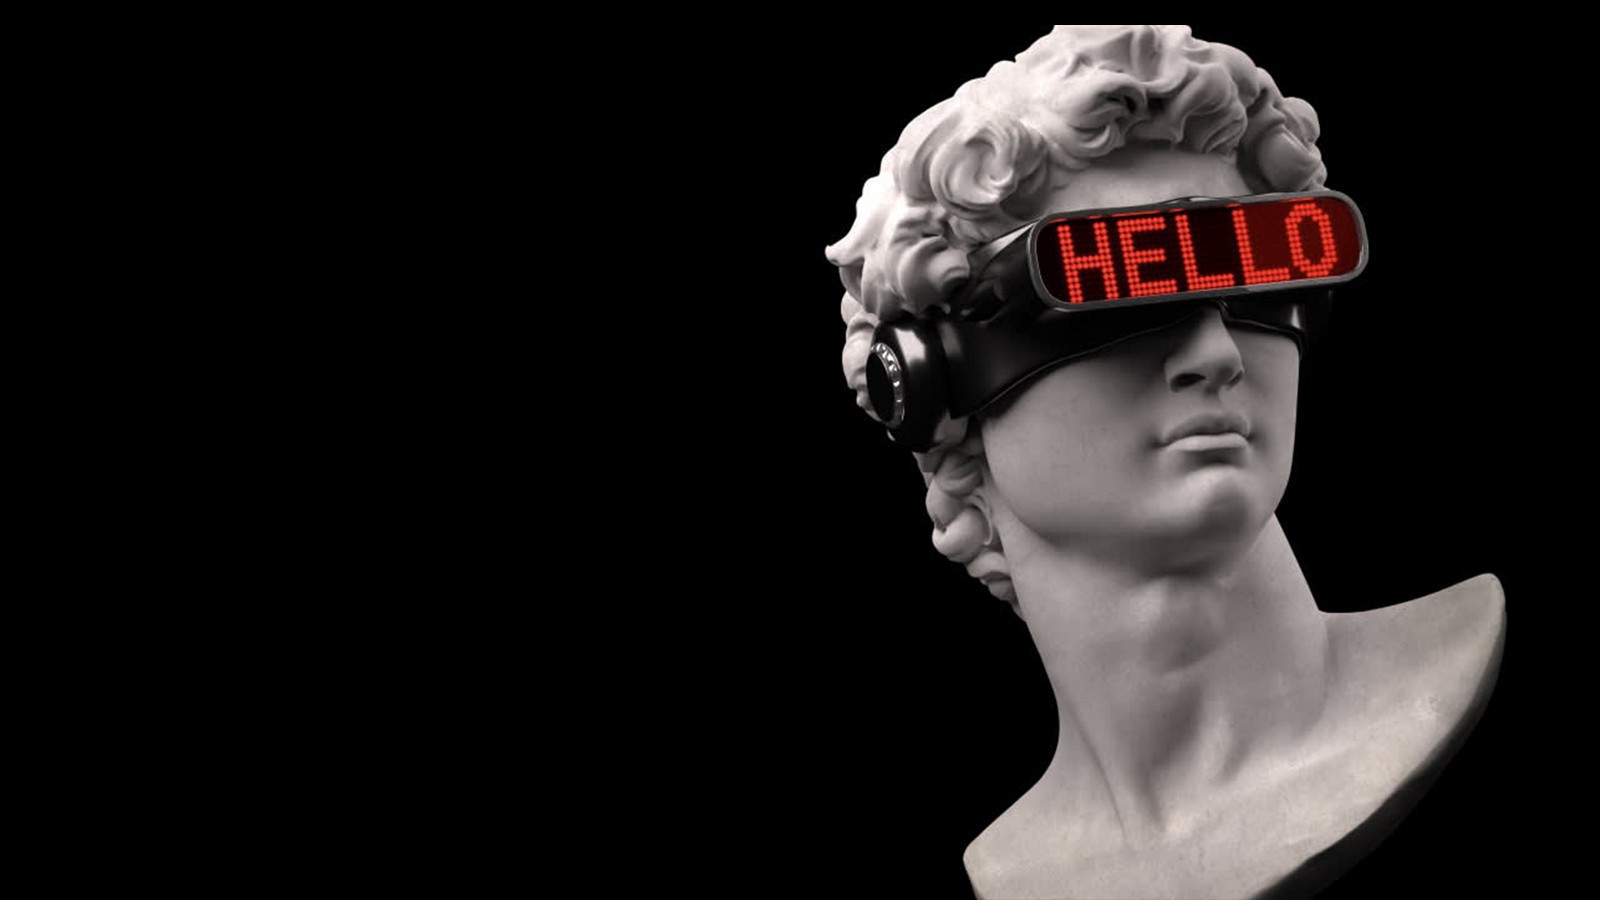 """The head of the Statue of David wearing VR goggles that say """"Hello""""."""